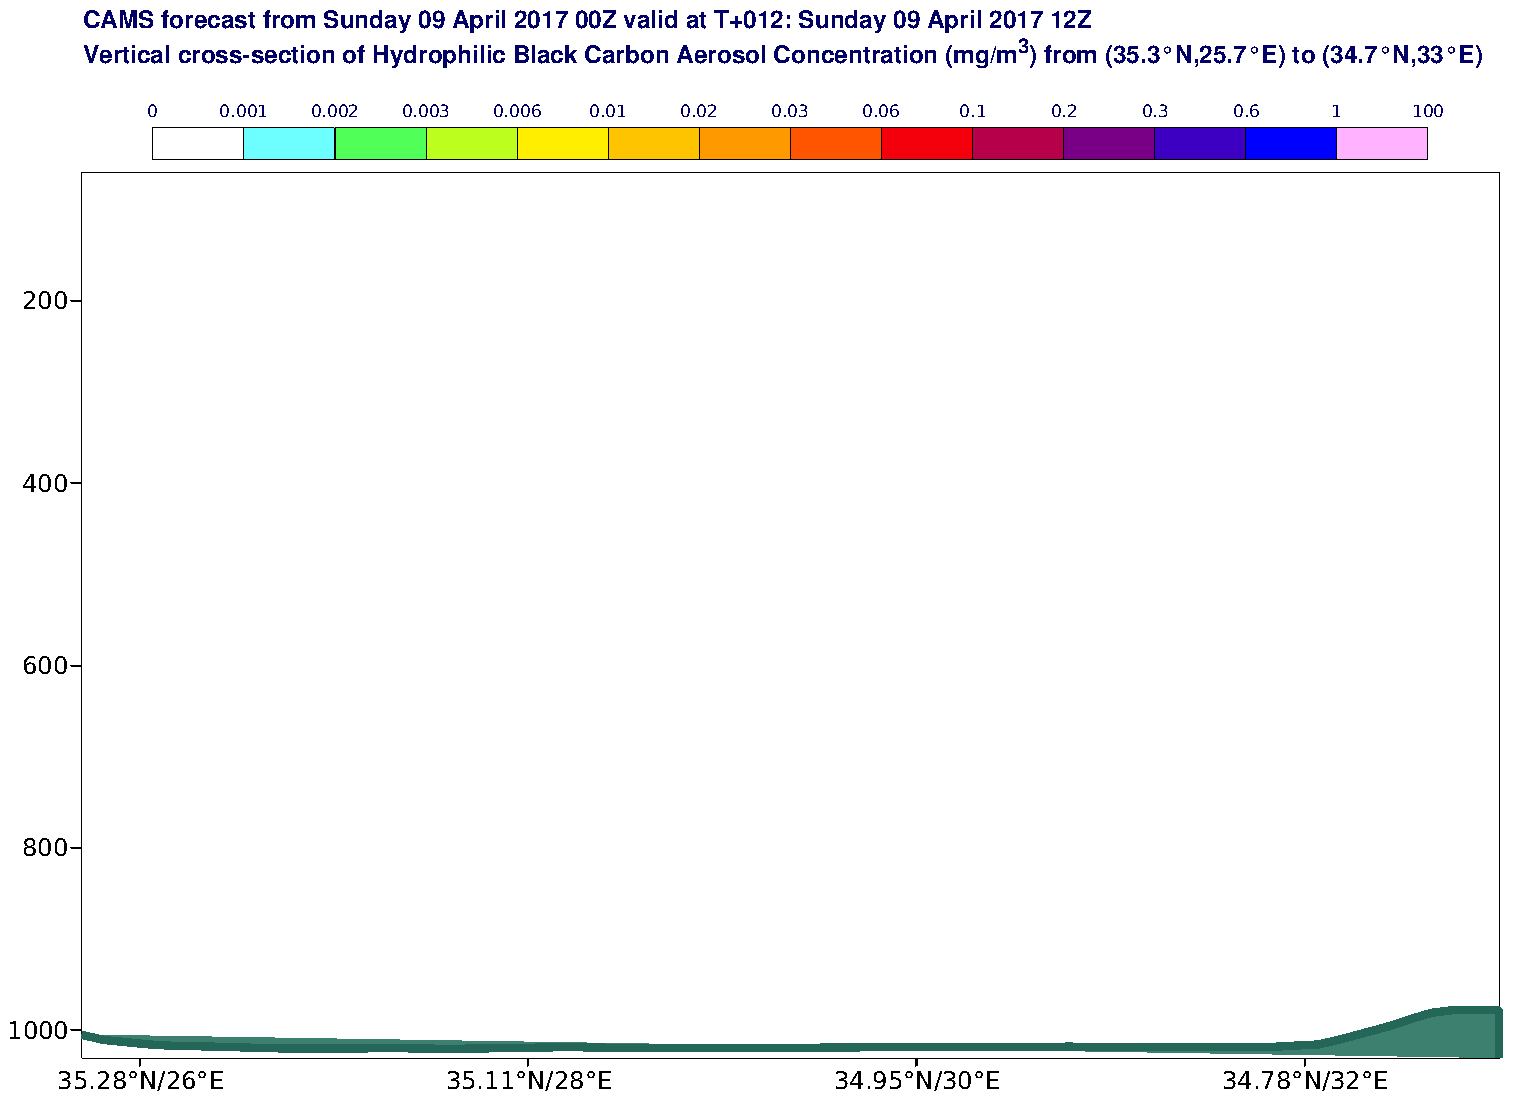 Vertical cross-section of Hydrophilic Black Carbon Aerosol Concentration (mg/m3) valid at T12 - 2017-04-09 12:00